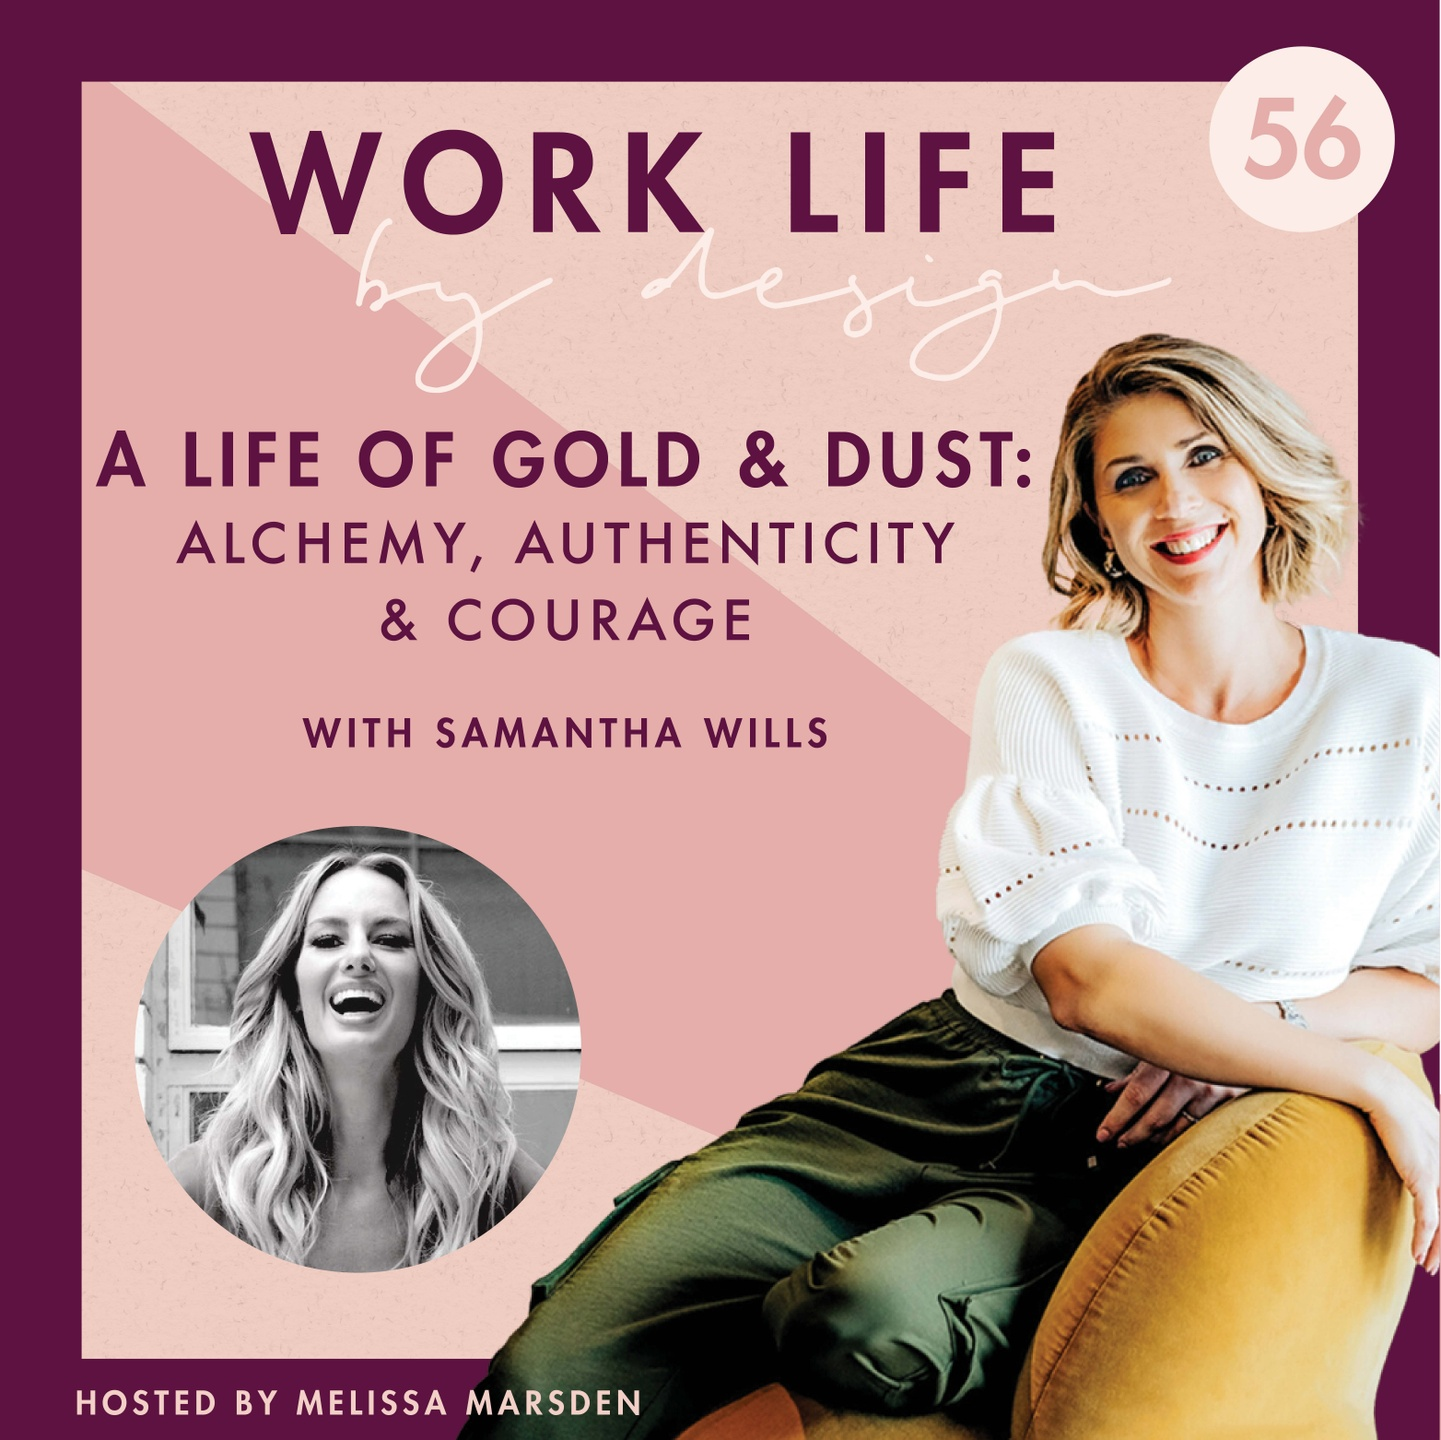 A Life of Gold & Dust: Alchemy, Authenticity & Courage with Samantha Wills   Melissa Marsden Work Life By Design Podcast